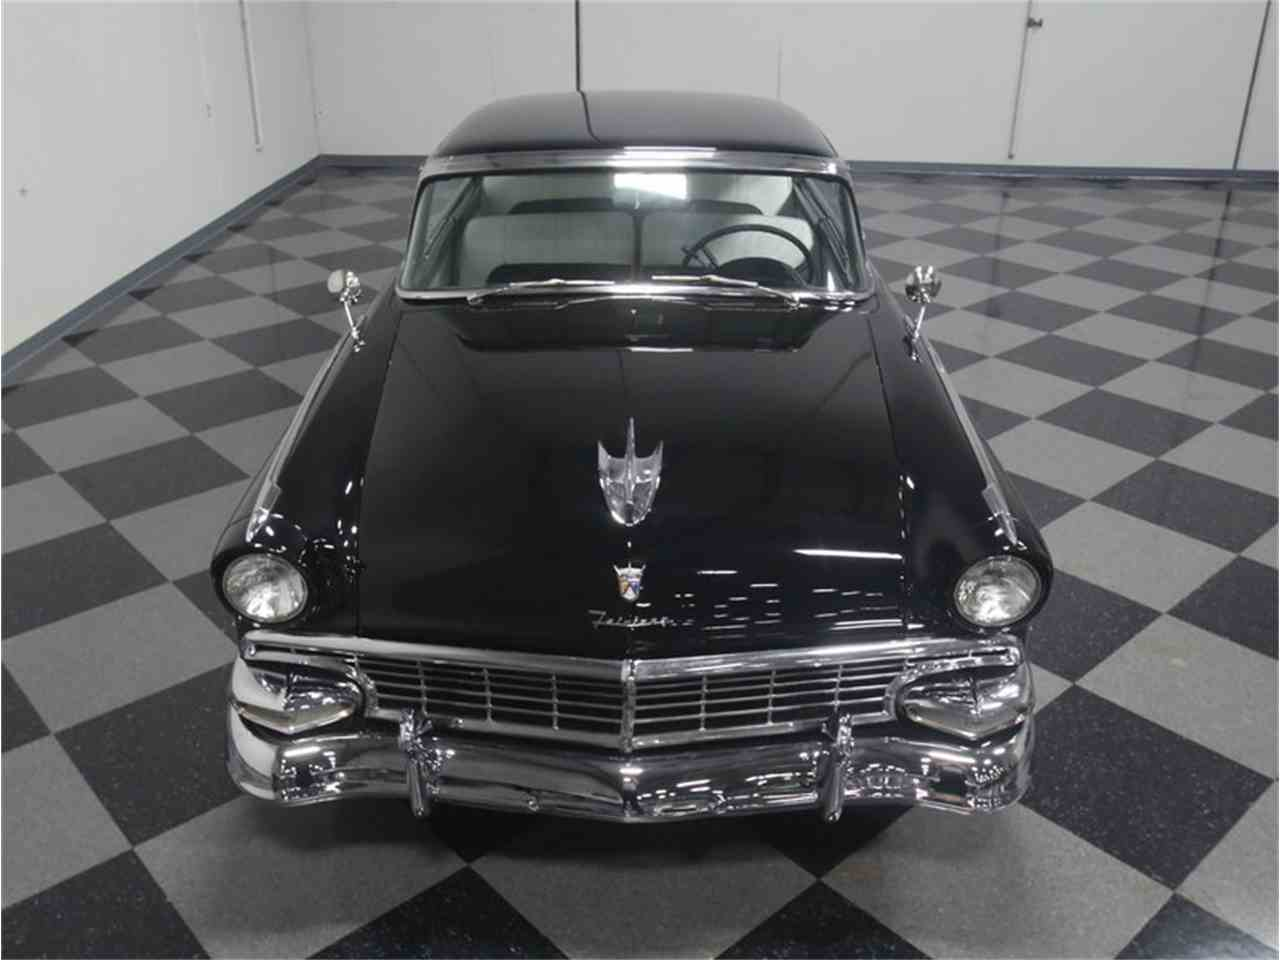 Large Picture of 1956 Ford Fairlane Victoria located in Lithia Springs Georgia - $39,995.00 Offered by Streetside Classics - Atlanta - LAUC